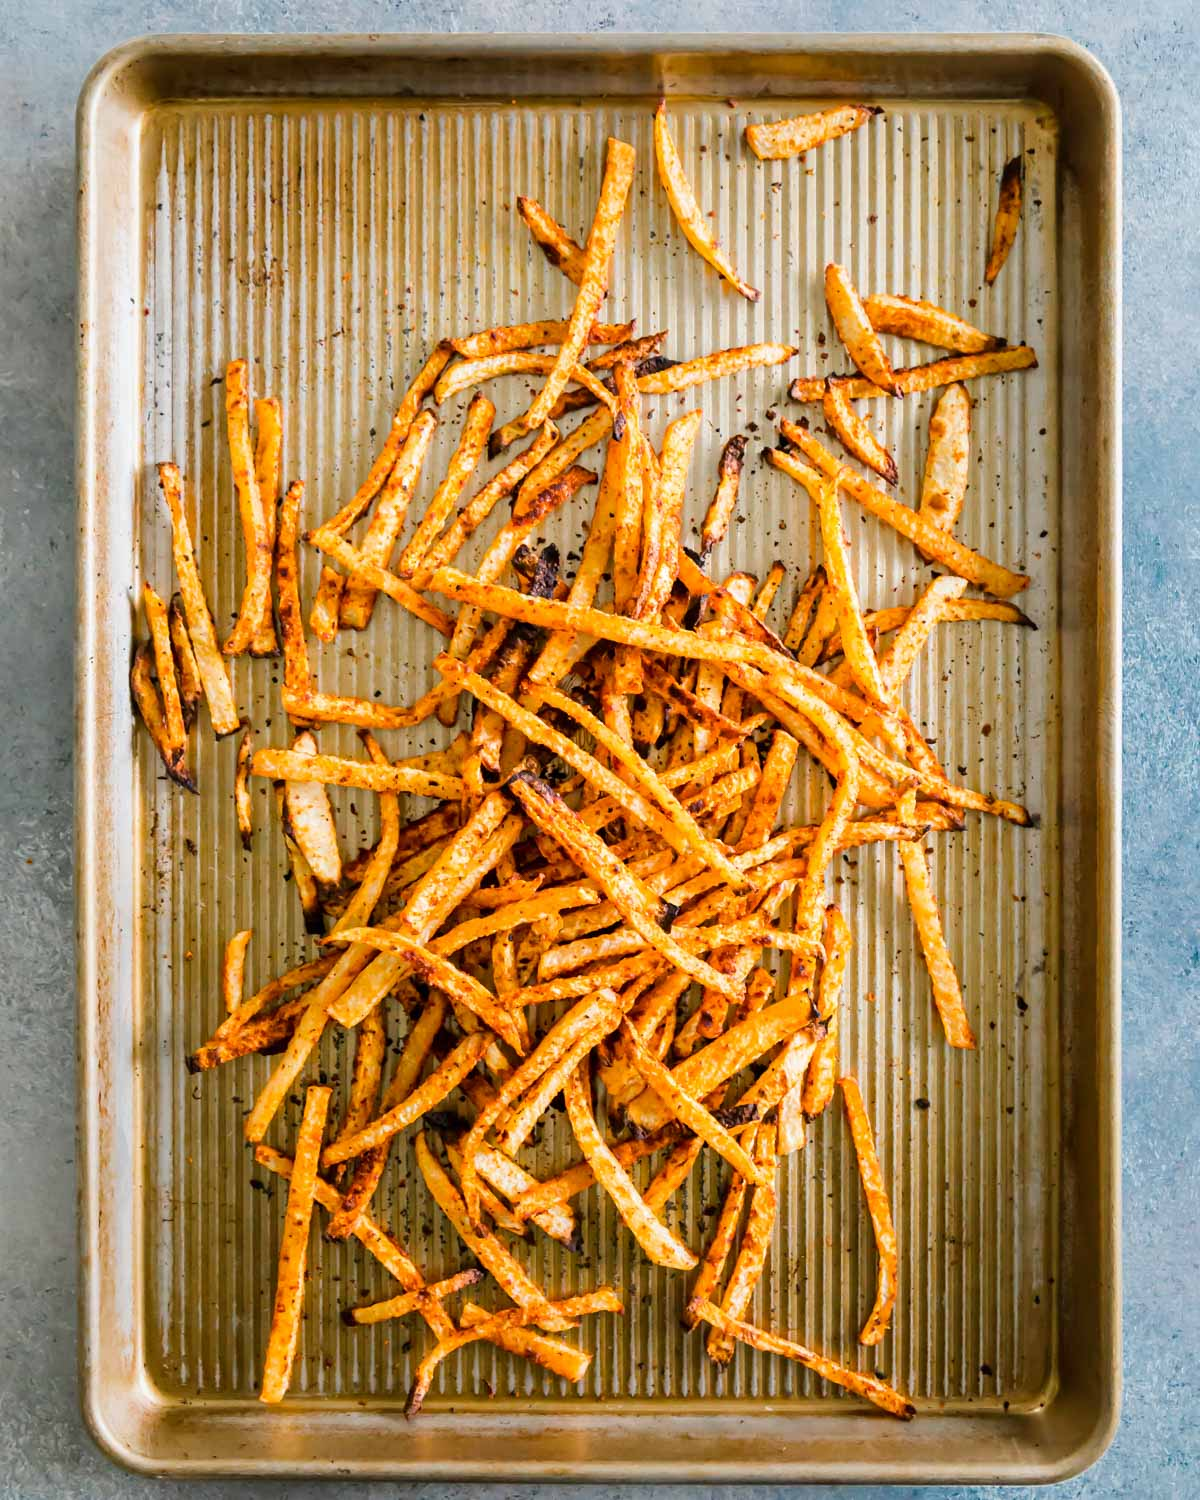 Crispy jicama fry recipe that bakes up easily in the oven in just 25 minutes.